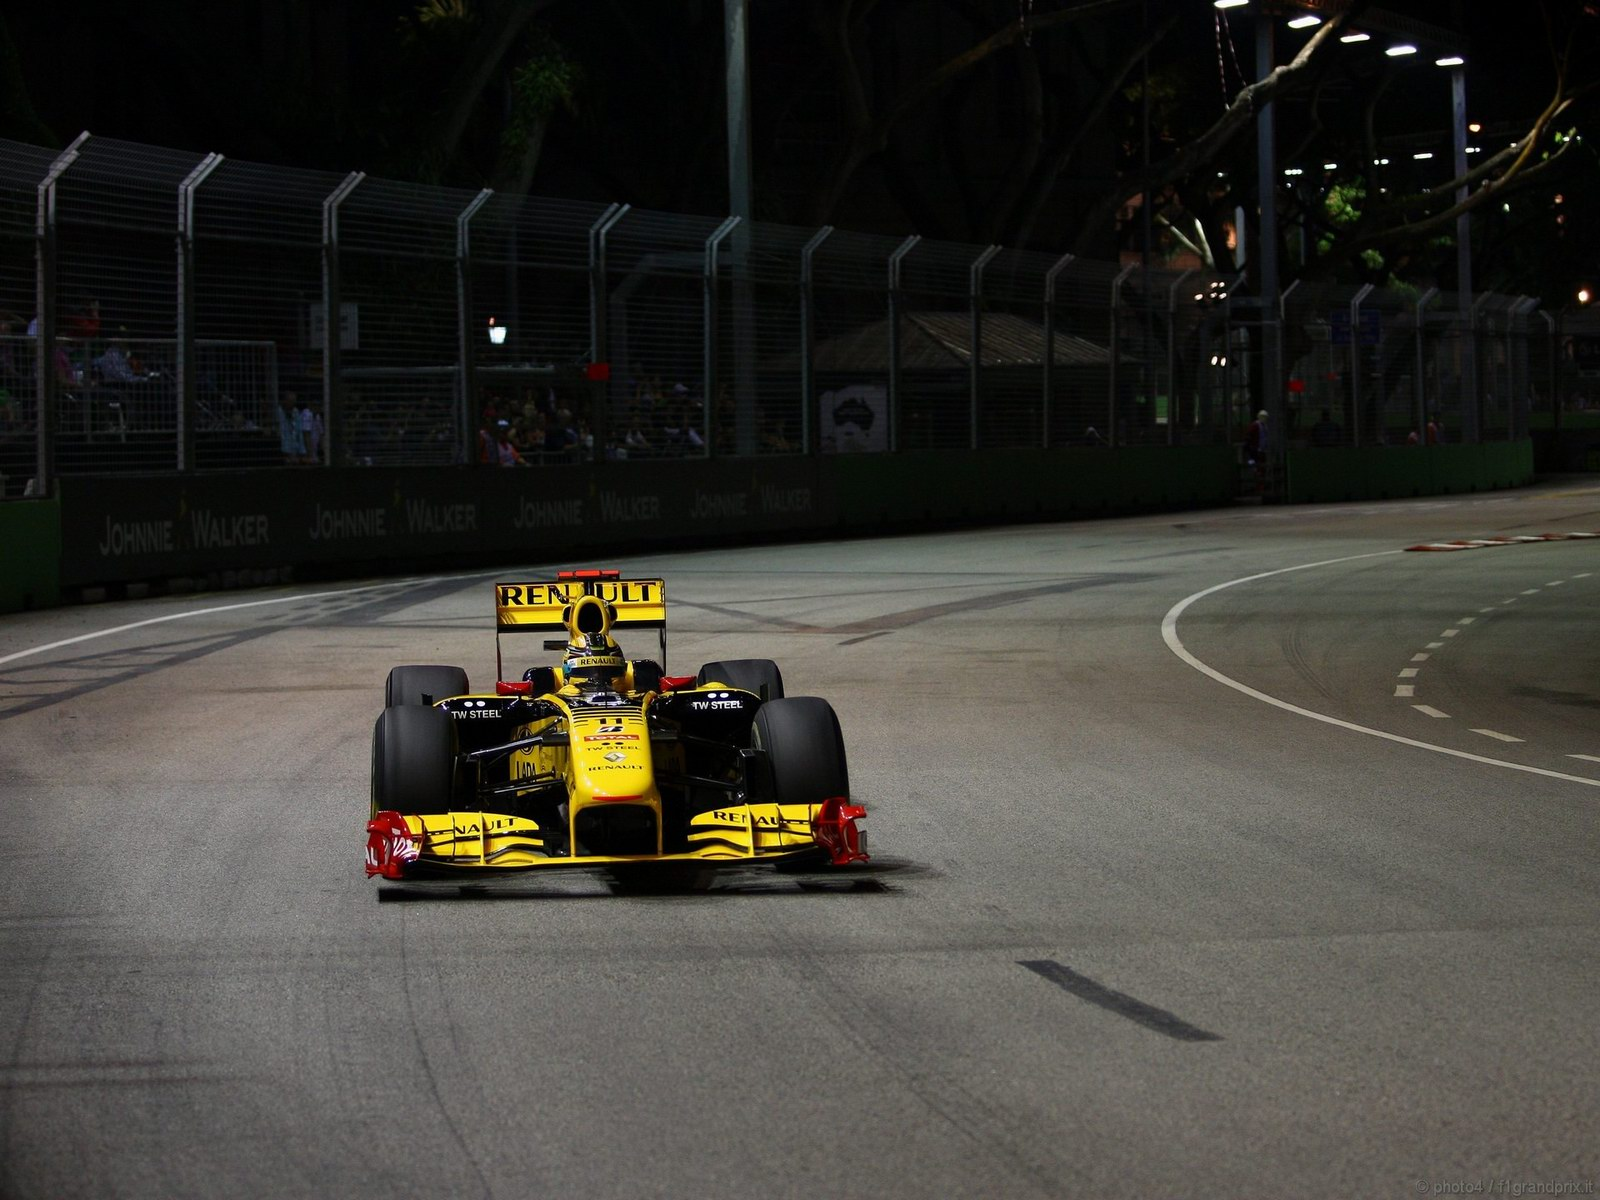 pojazdy - formula1 - gp_singapore_wallpapers_000101